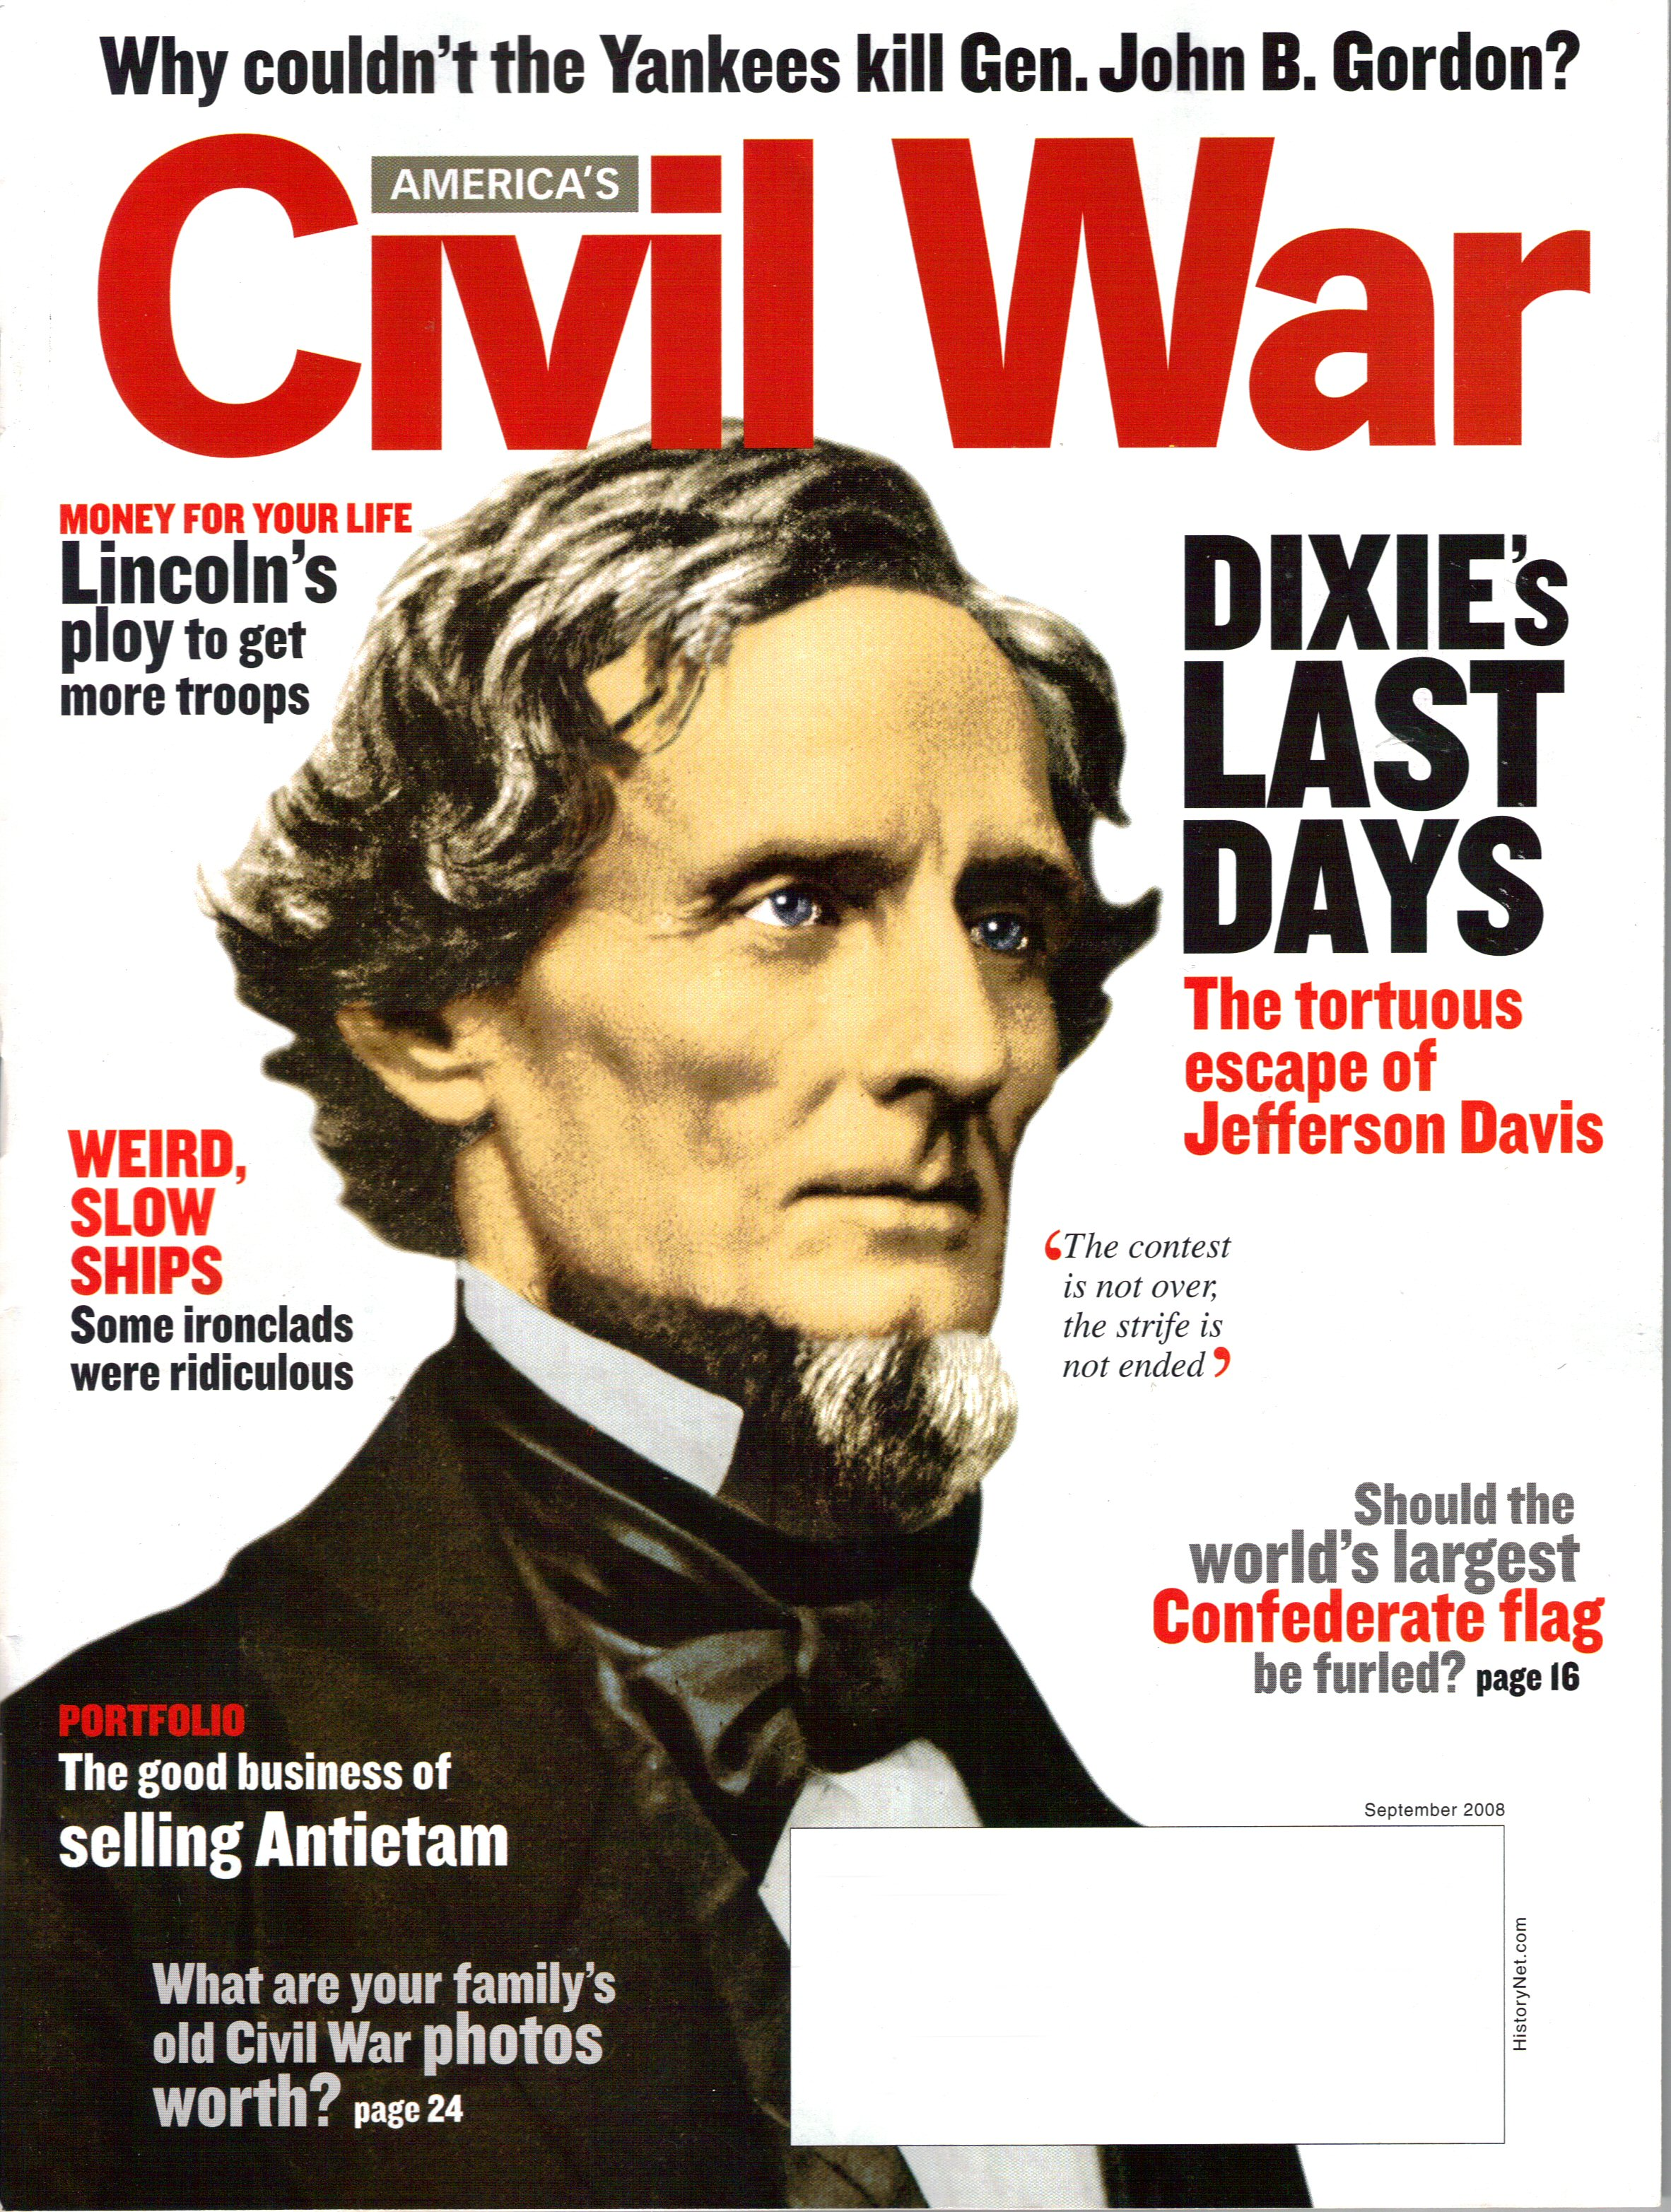 Americas Civil War, Volume 21, Number 4 (September 2008)